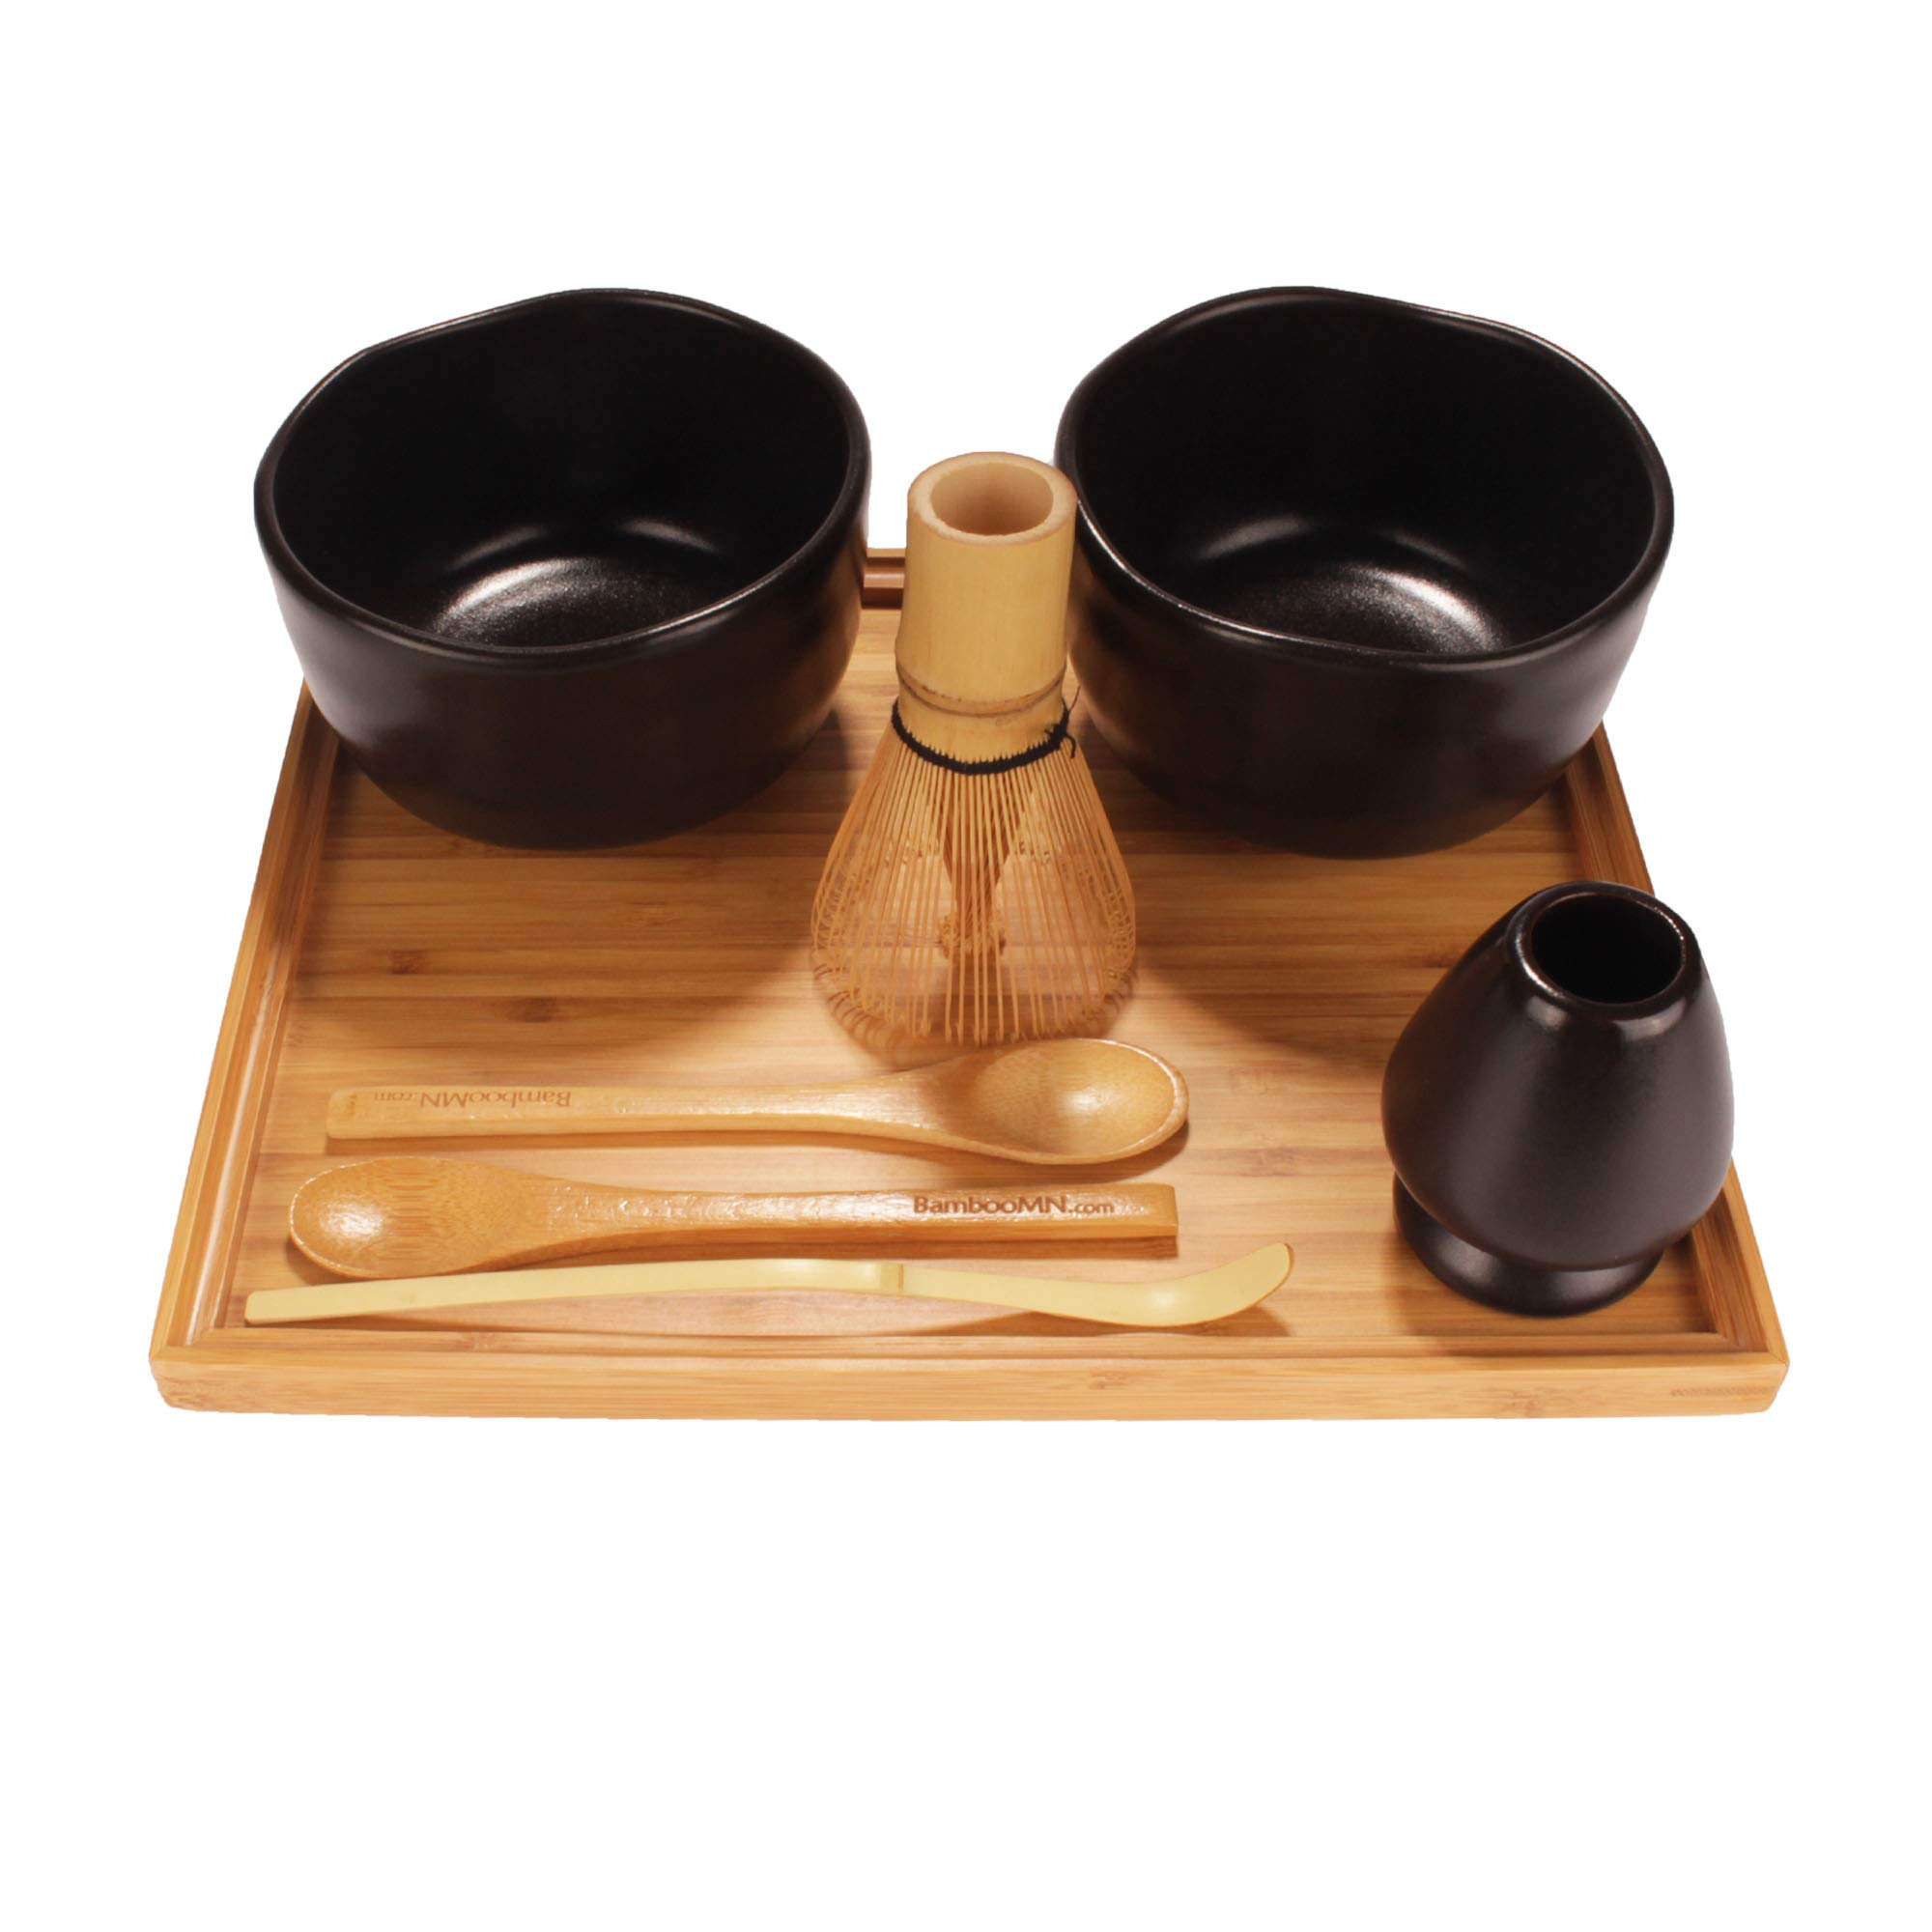 BambooMN Brand - Matcha Bowl Set (Includes 2 Bowls, Tea Whisk, Rest, Large Tray, 2 Teaspoons and Chasaku) - 1 Set - Black by BambooMN